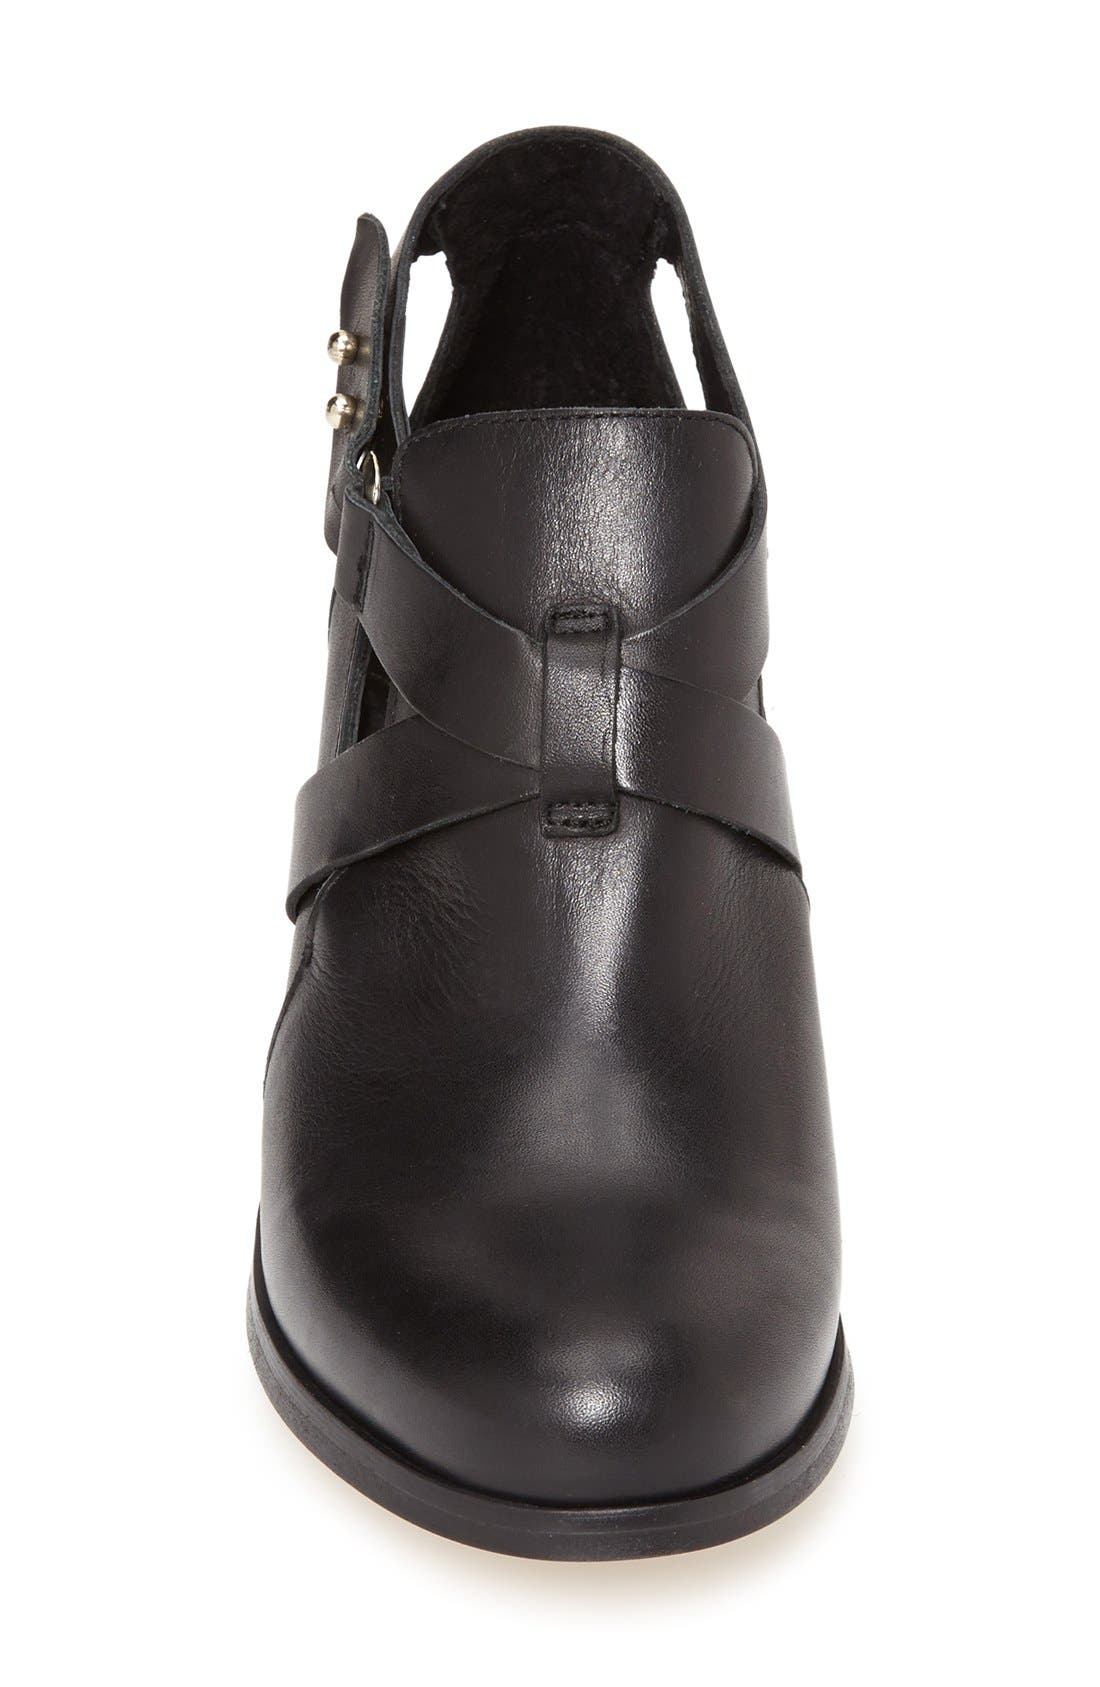 TOPSHOP,                             'Mirror' Crisscross Strap Leather Ankle Boot,                             Alternate thumbnail 2, color,                             001